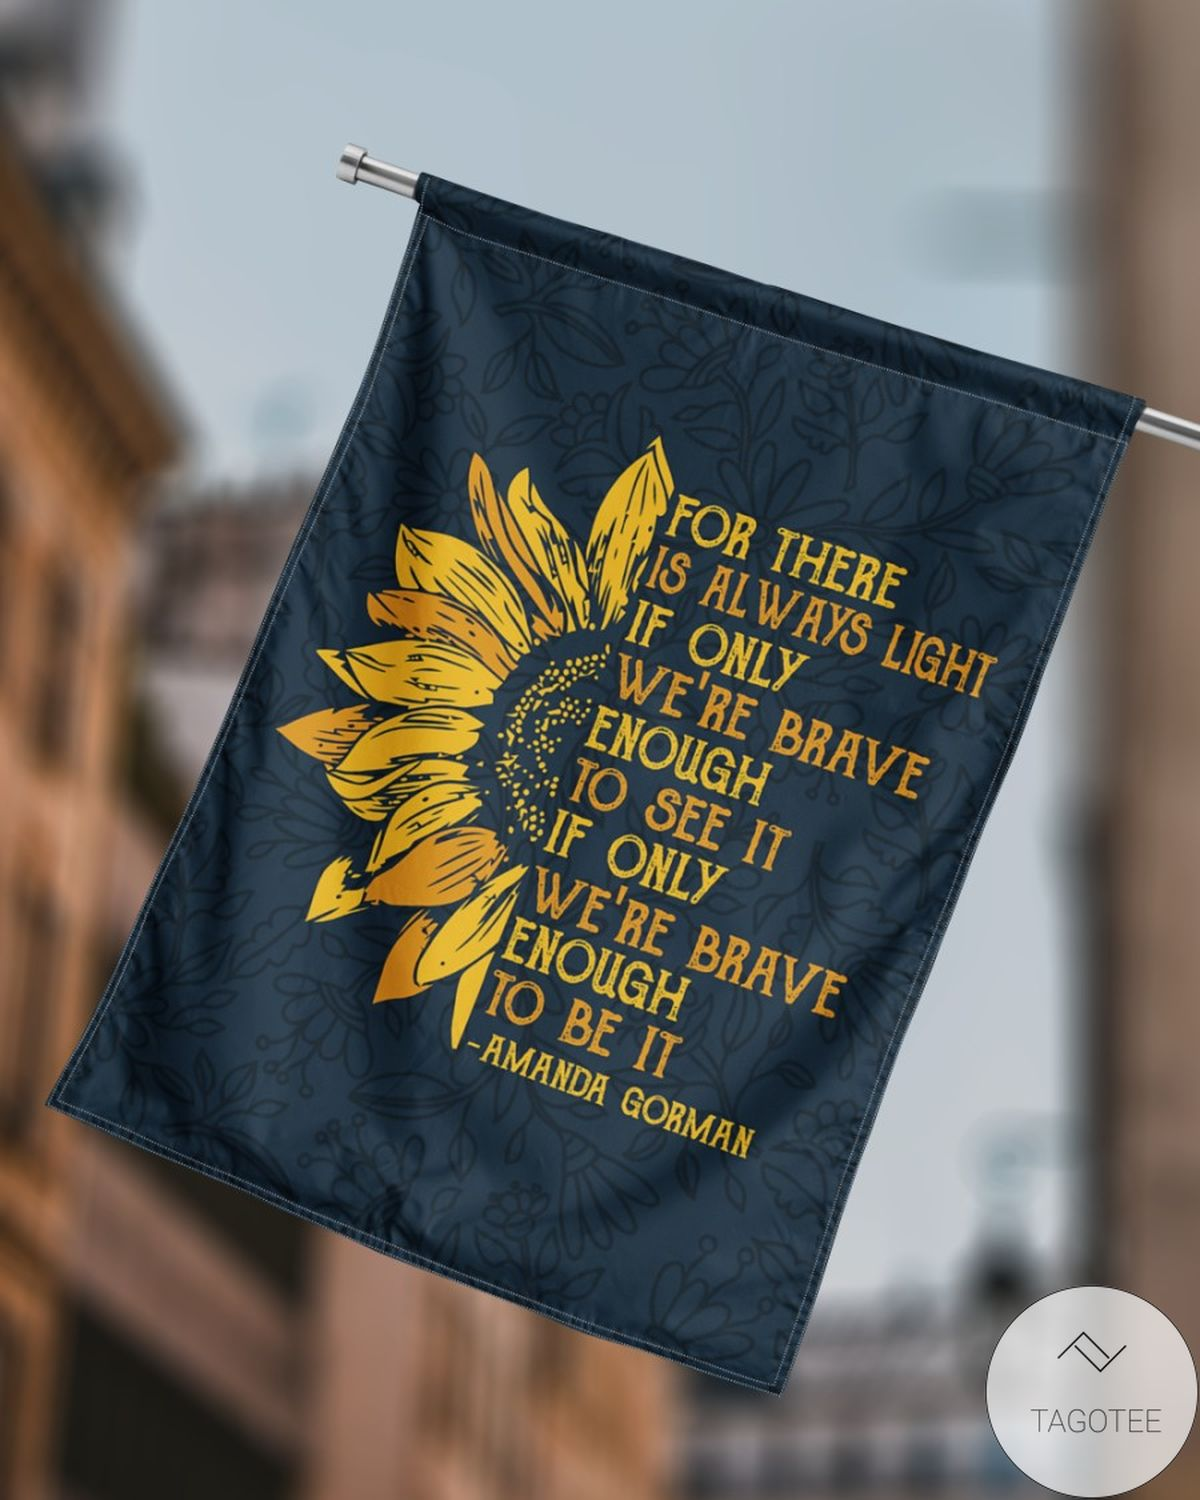 Amanda Gorman For There Is Always Light If Only We're Brave Enough Flags